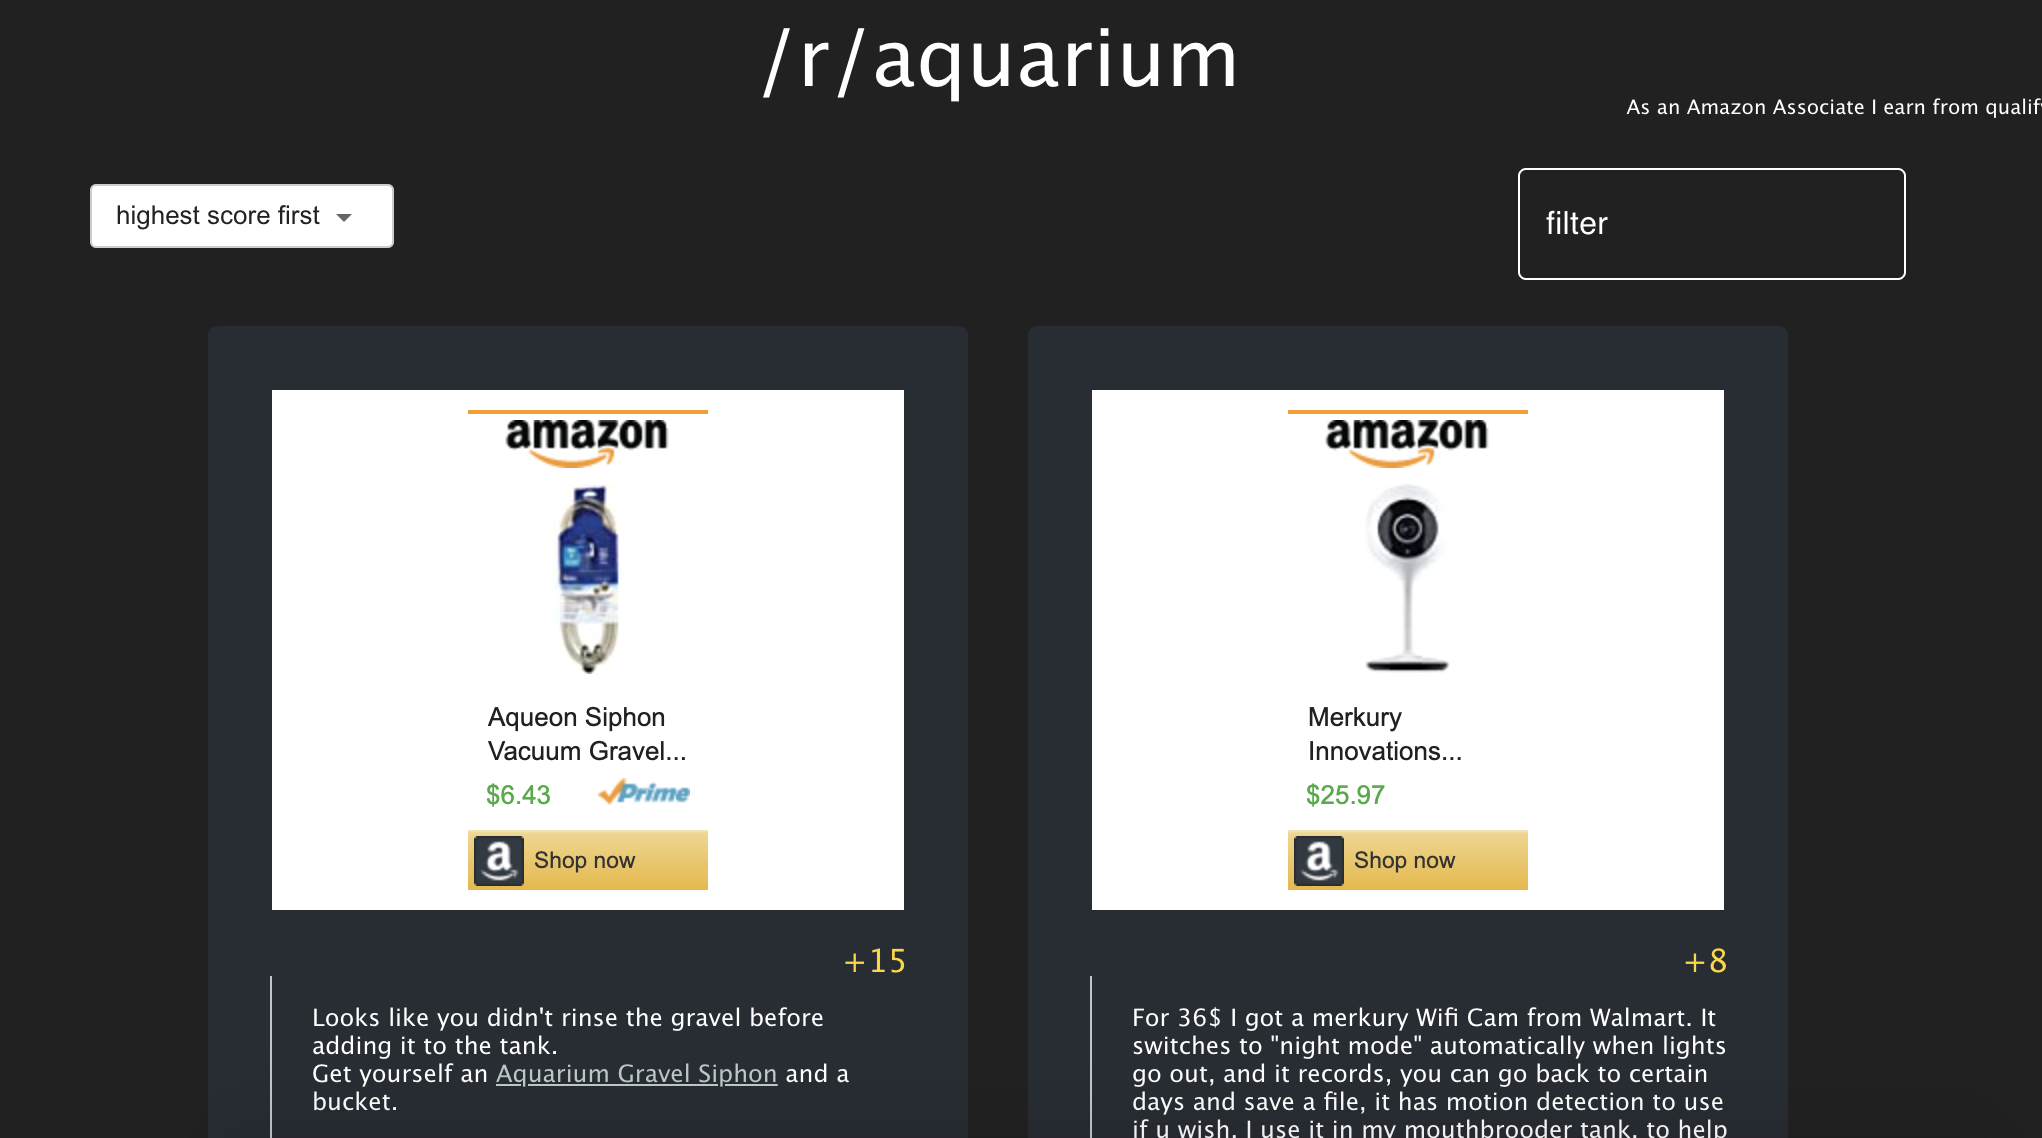 picture of amazon aquarium products with how many upvotes they got on Reddit